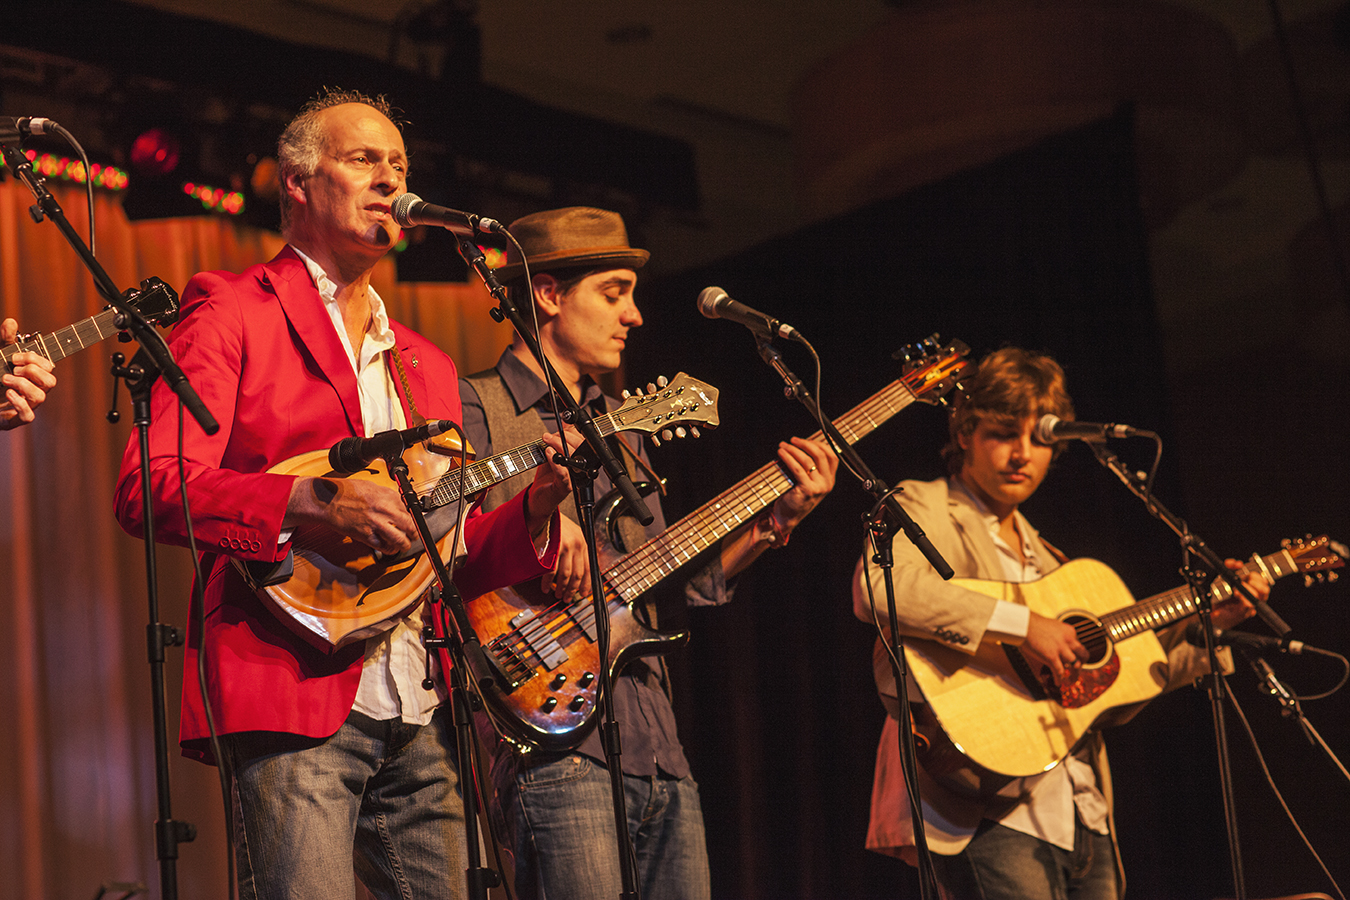 Red Wine, a bluegrass band from Italy